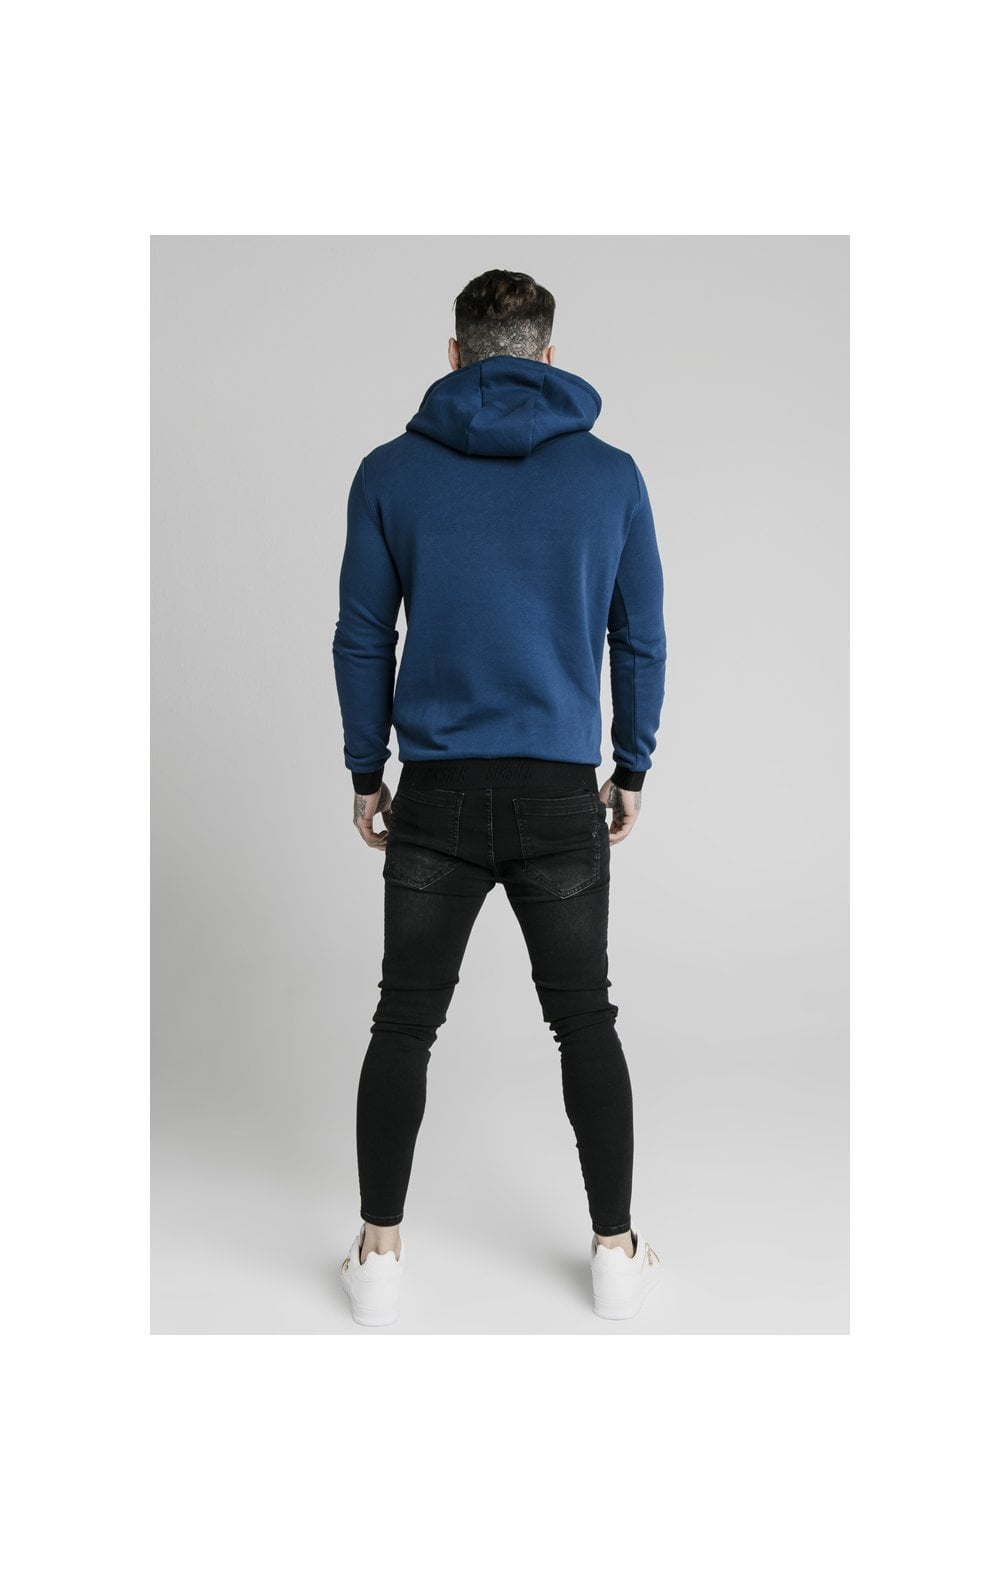 Load image into Gallery viewer, SikSilk Taped Overhead Hoodie – Marine (5)